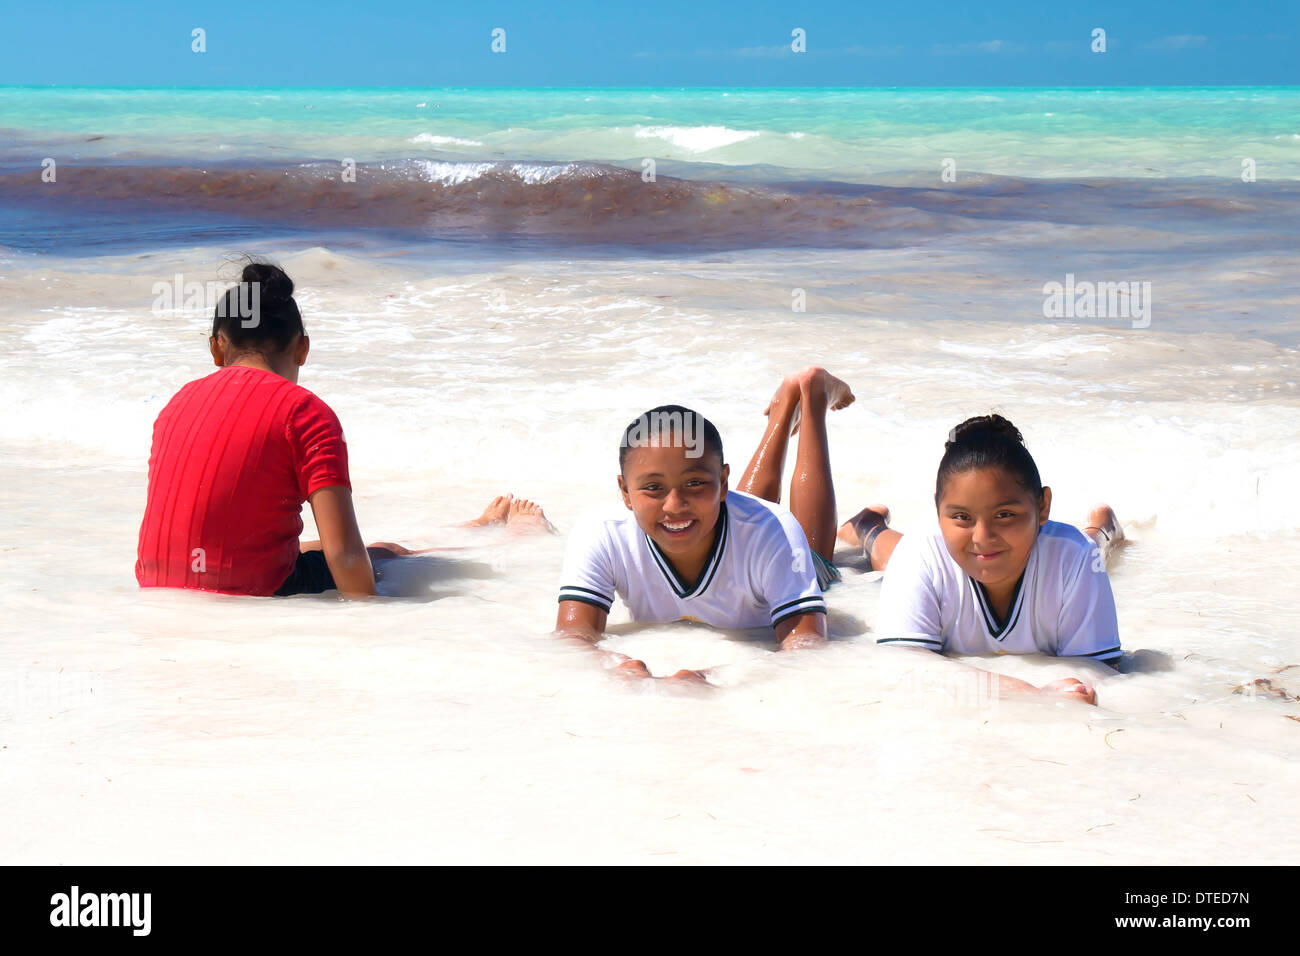 mexican-girls-in-their-school-uniforms-enjoying-the-warm-waters-of-DTED7N.jpg